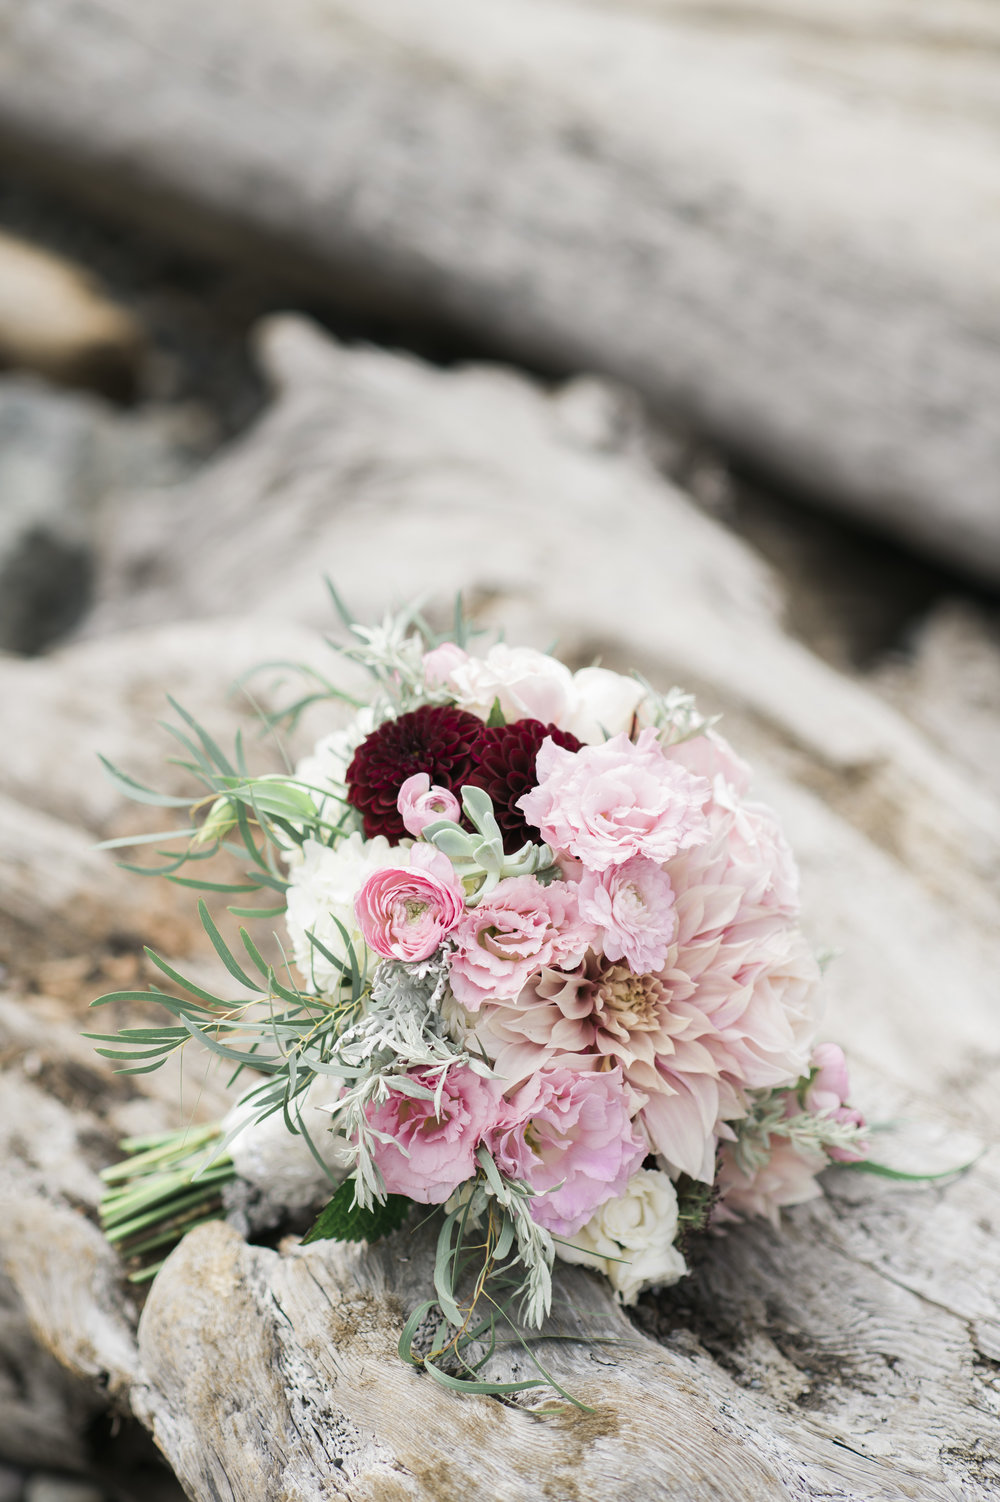 Blush and White Bridal Bouquet - A Romantic Sodo Park Seattle Wedding - Kimberly Kay Photography